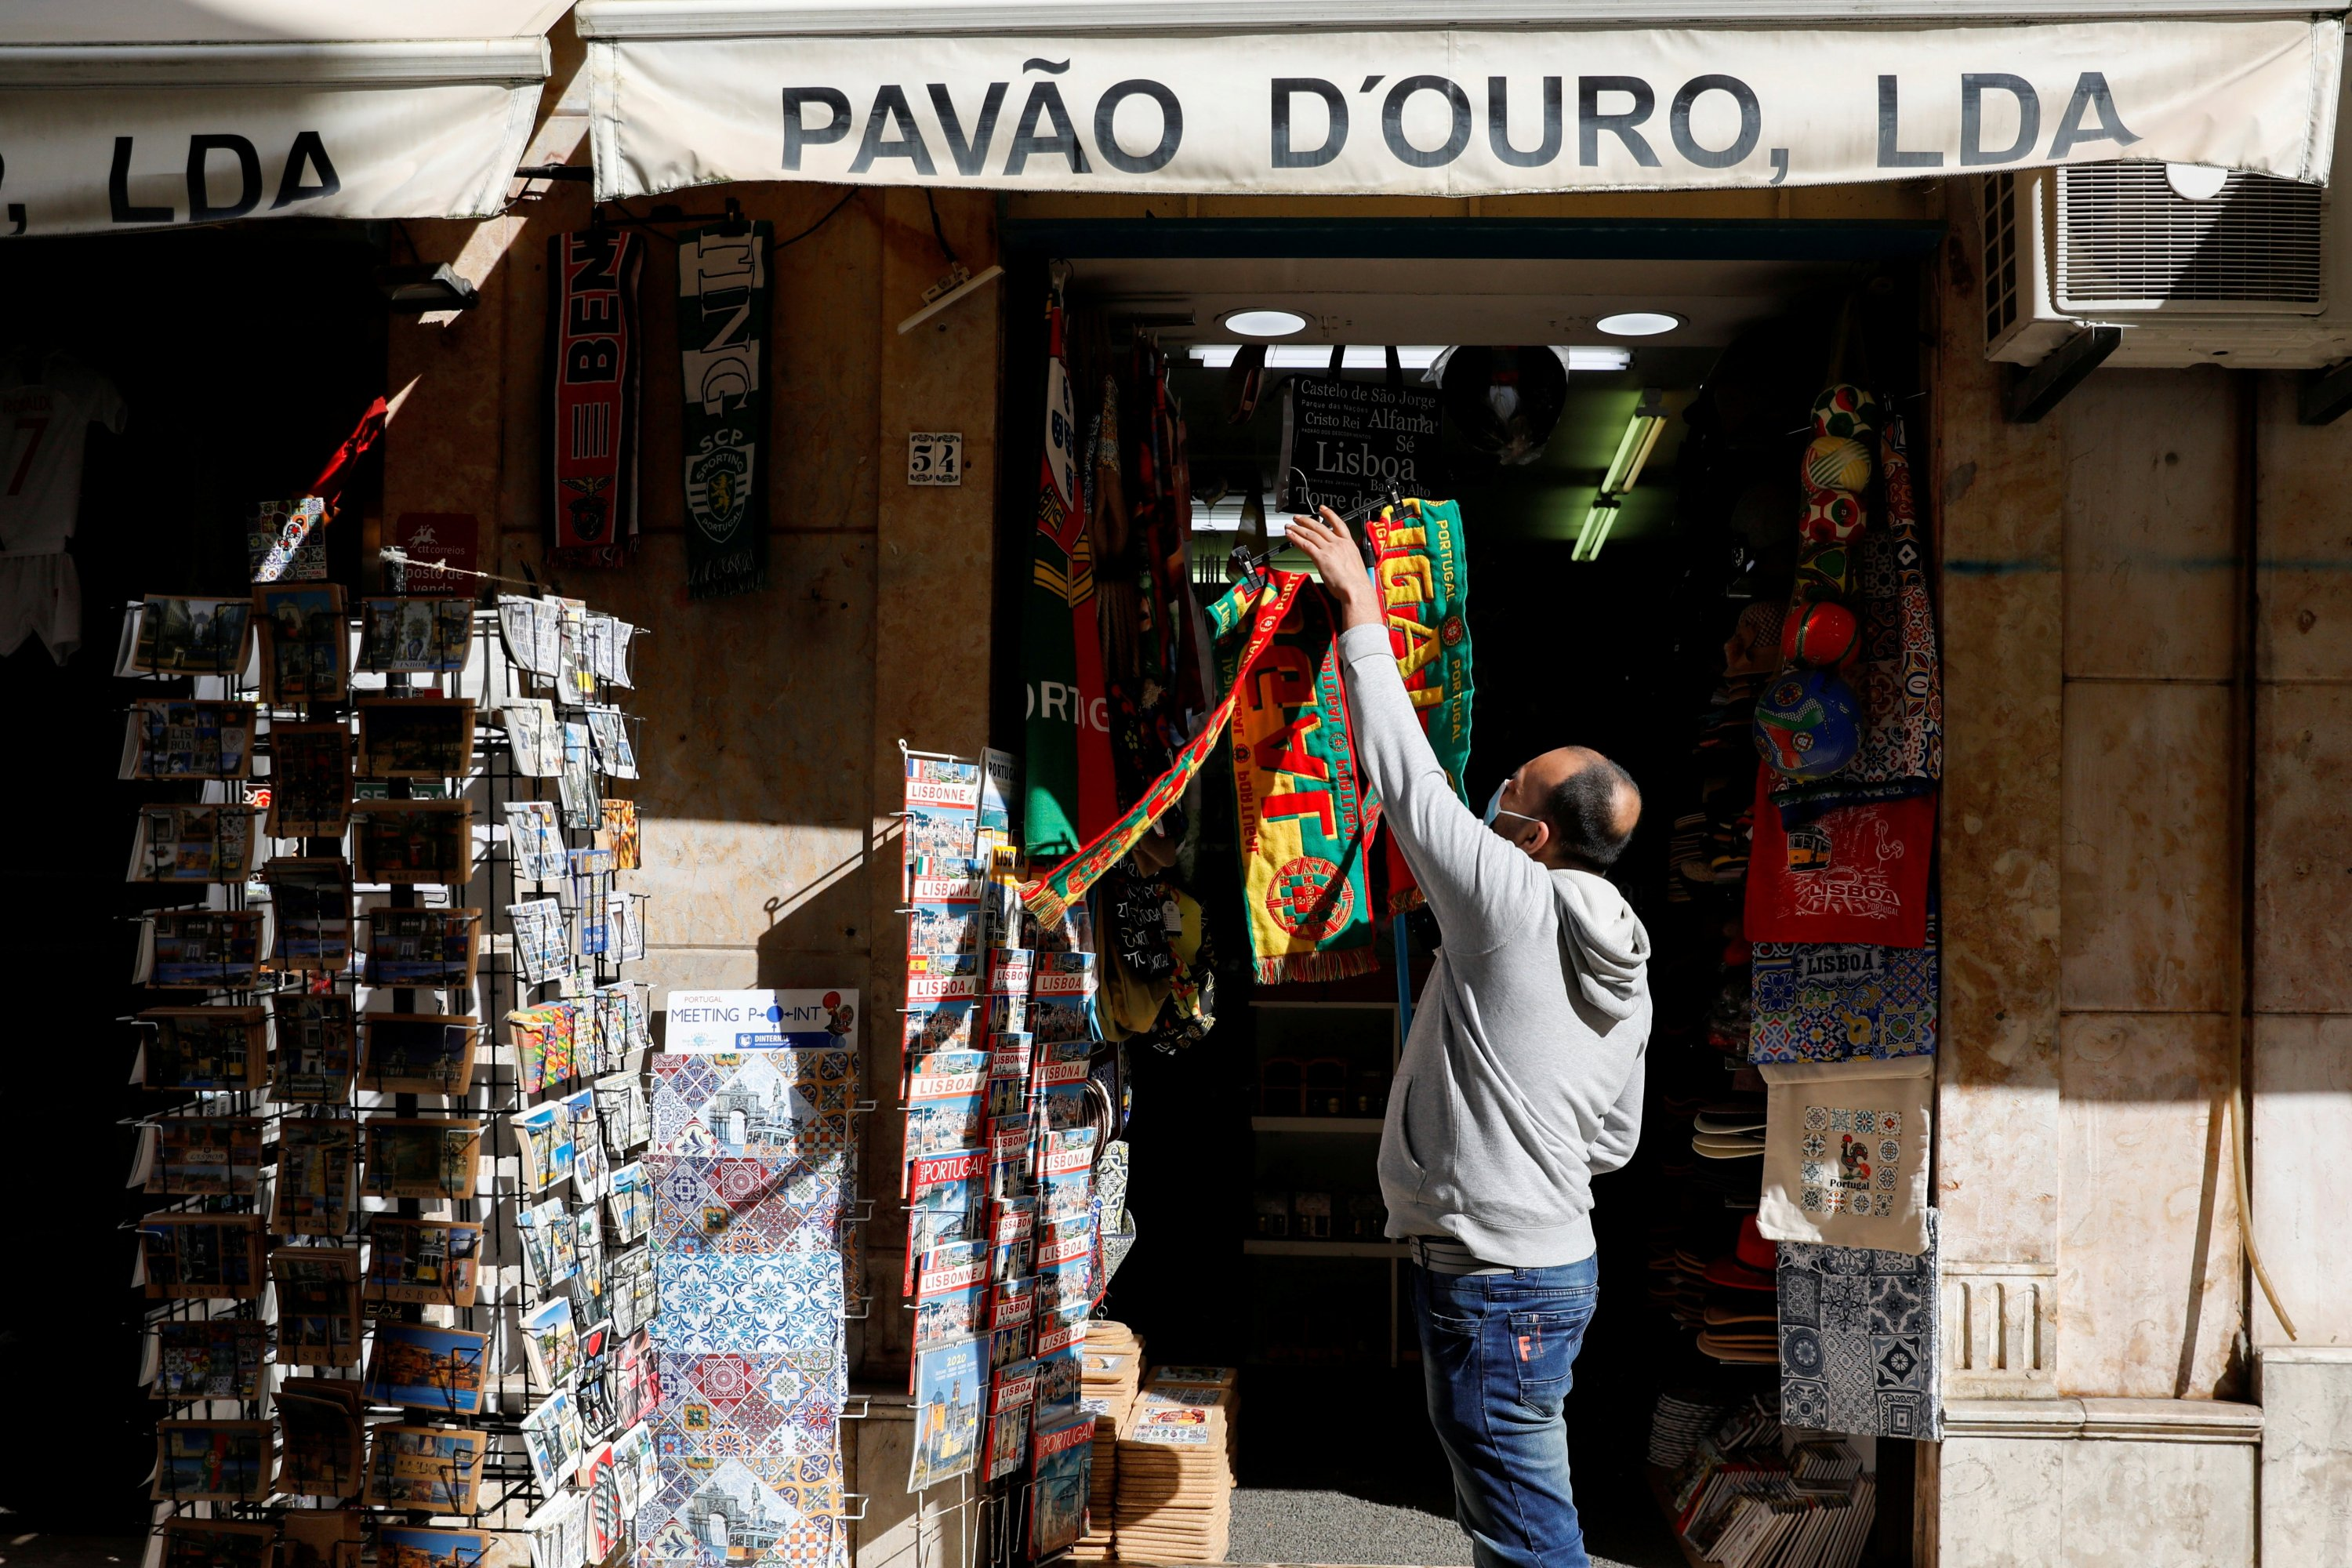 A man hangs football scarves in a store on the first day of the reopening after a country lockdown, amid the coronavirus disease (COVID-19) pandemic, in Lisbon, Portugal, April 5, 2021. (REUTERS/File Photo)